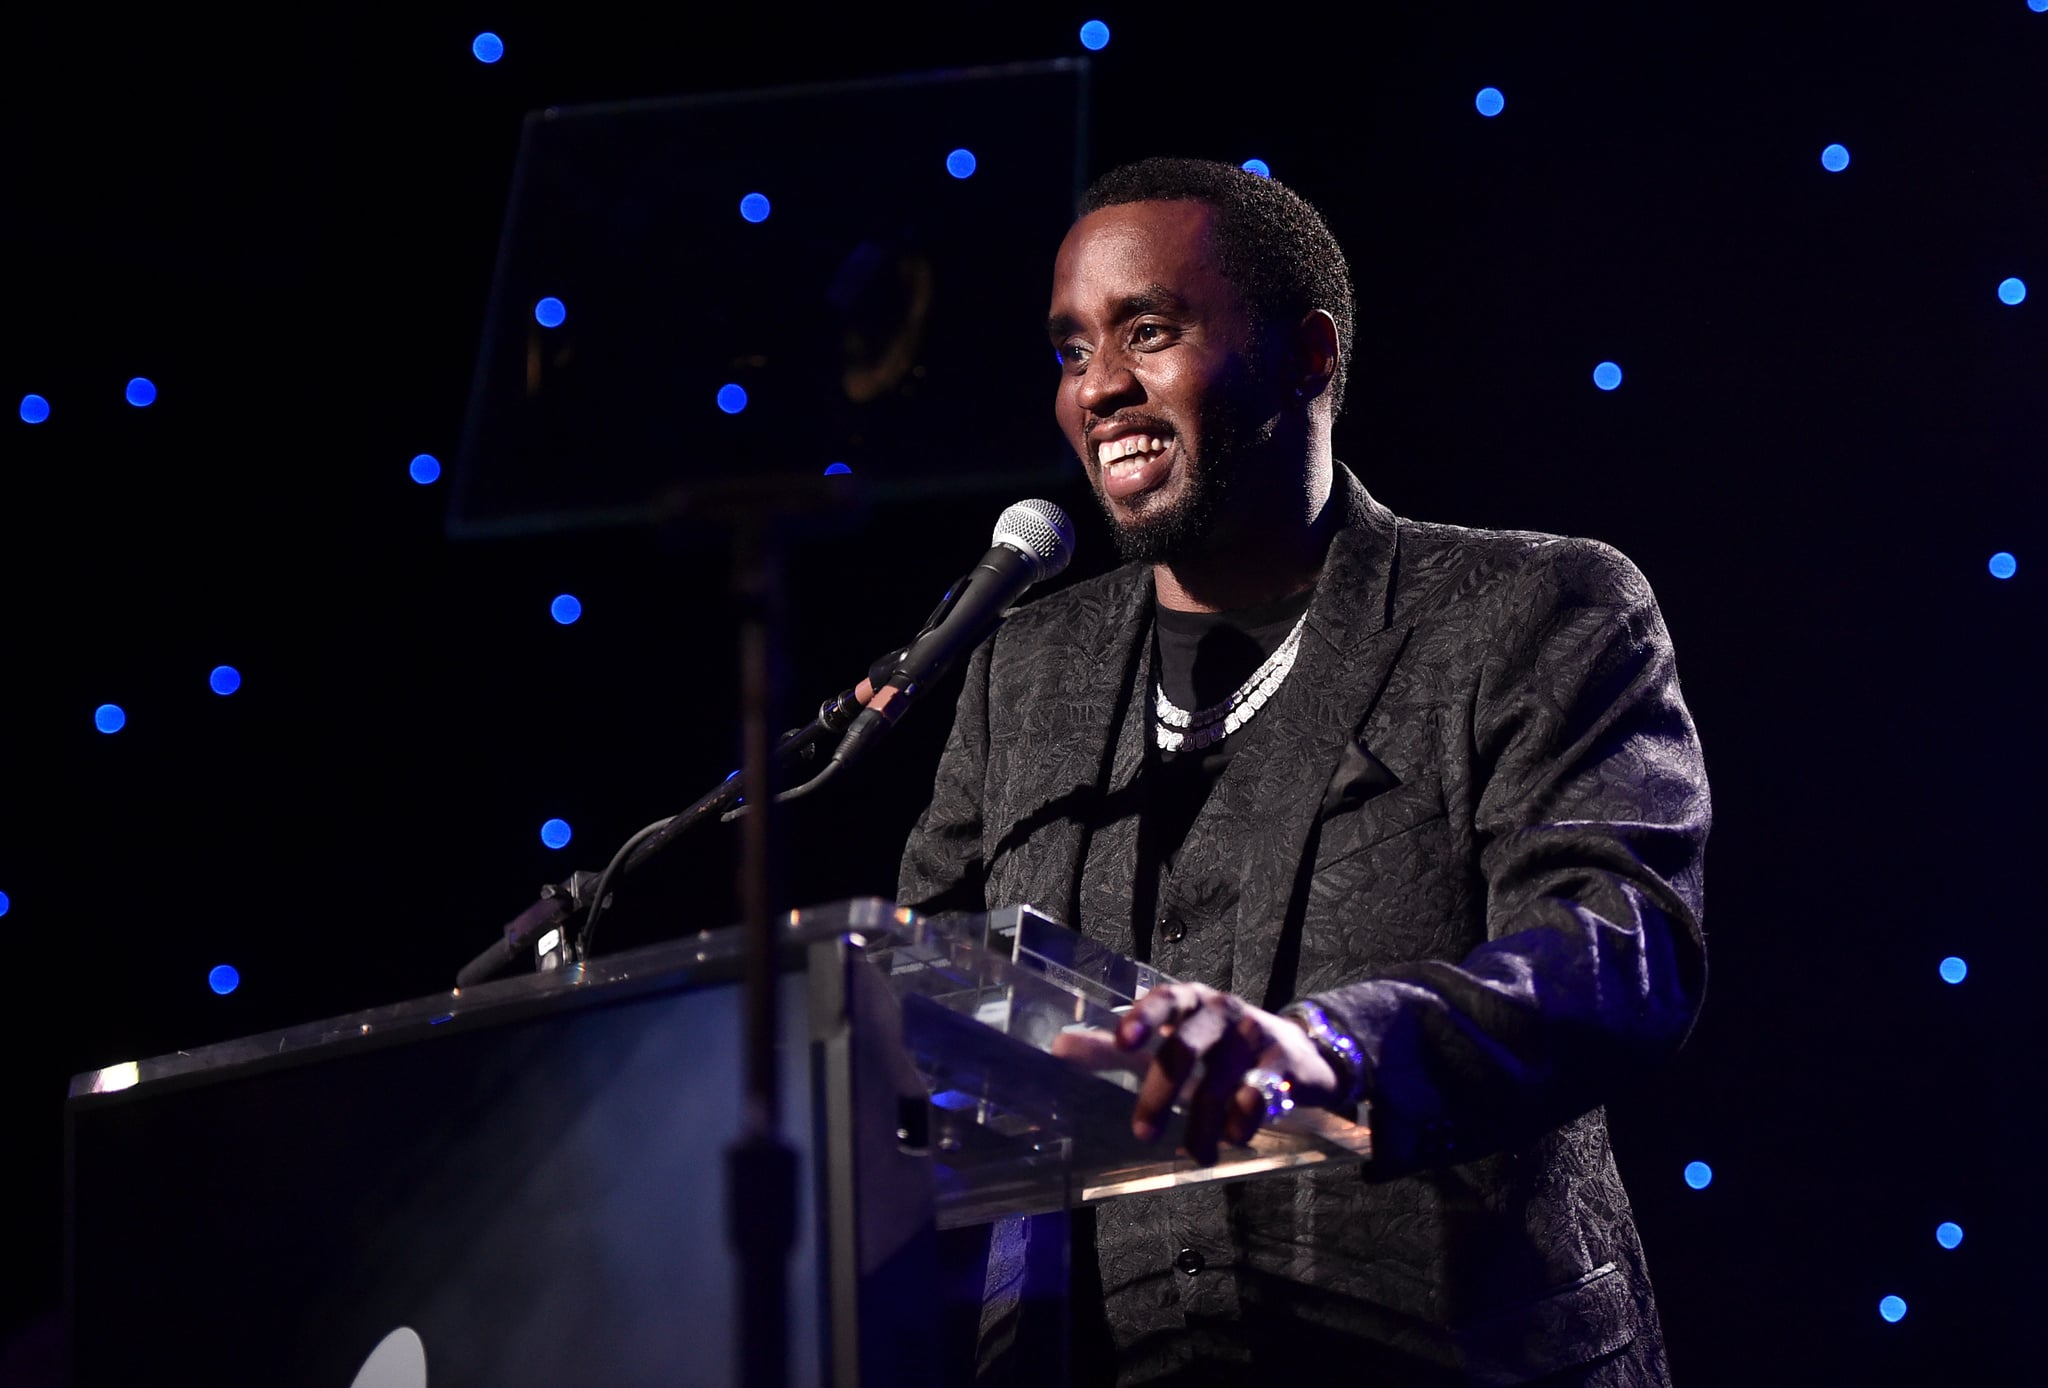 BEVERLY HILLS, CALIFORNIA - JANUARY 25: Sean 'Diddy' Combs accepts the President's Merit Award onstage during the Pre-GRAMMY Gala and GRAMMY Salute to Industry Icons Honoring Sean